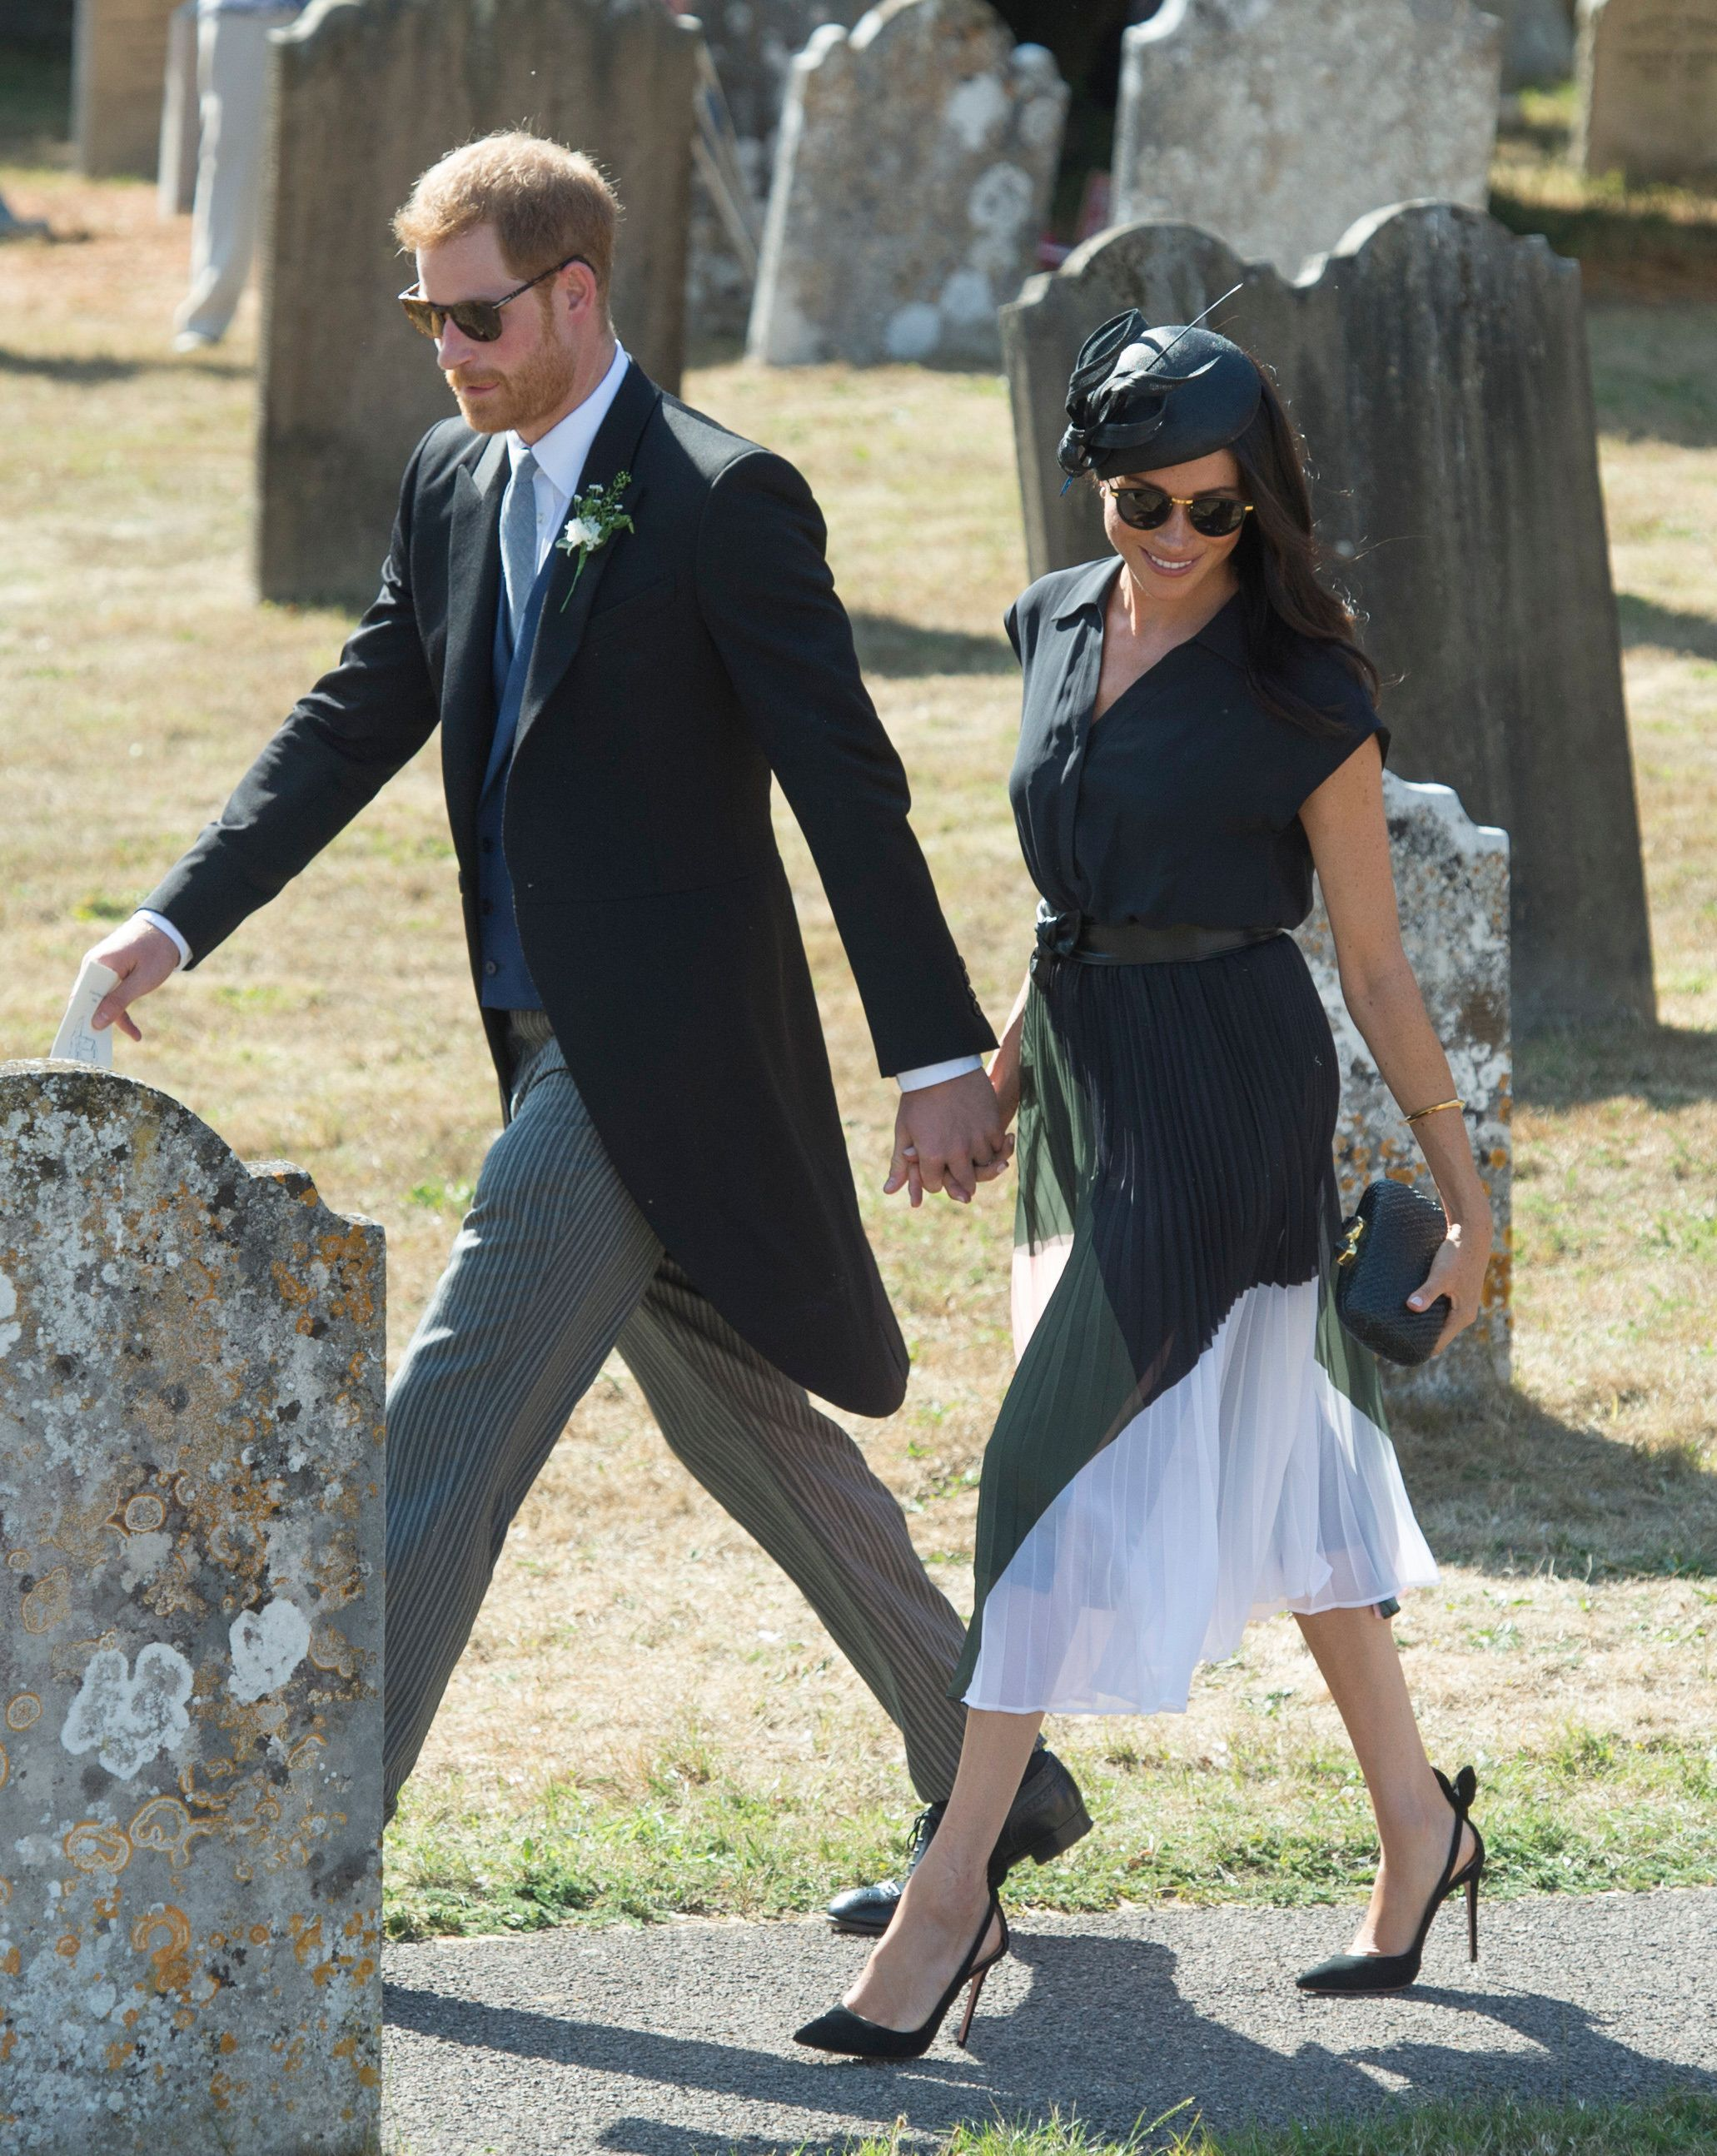 The Duke and Duchess of Sussex attend the wedding of Charlie Van Straubenzee and Daisy Jenks on Aug. 4 in Frensham, United Ki